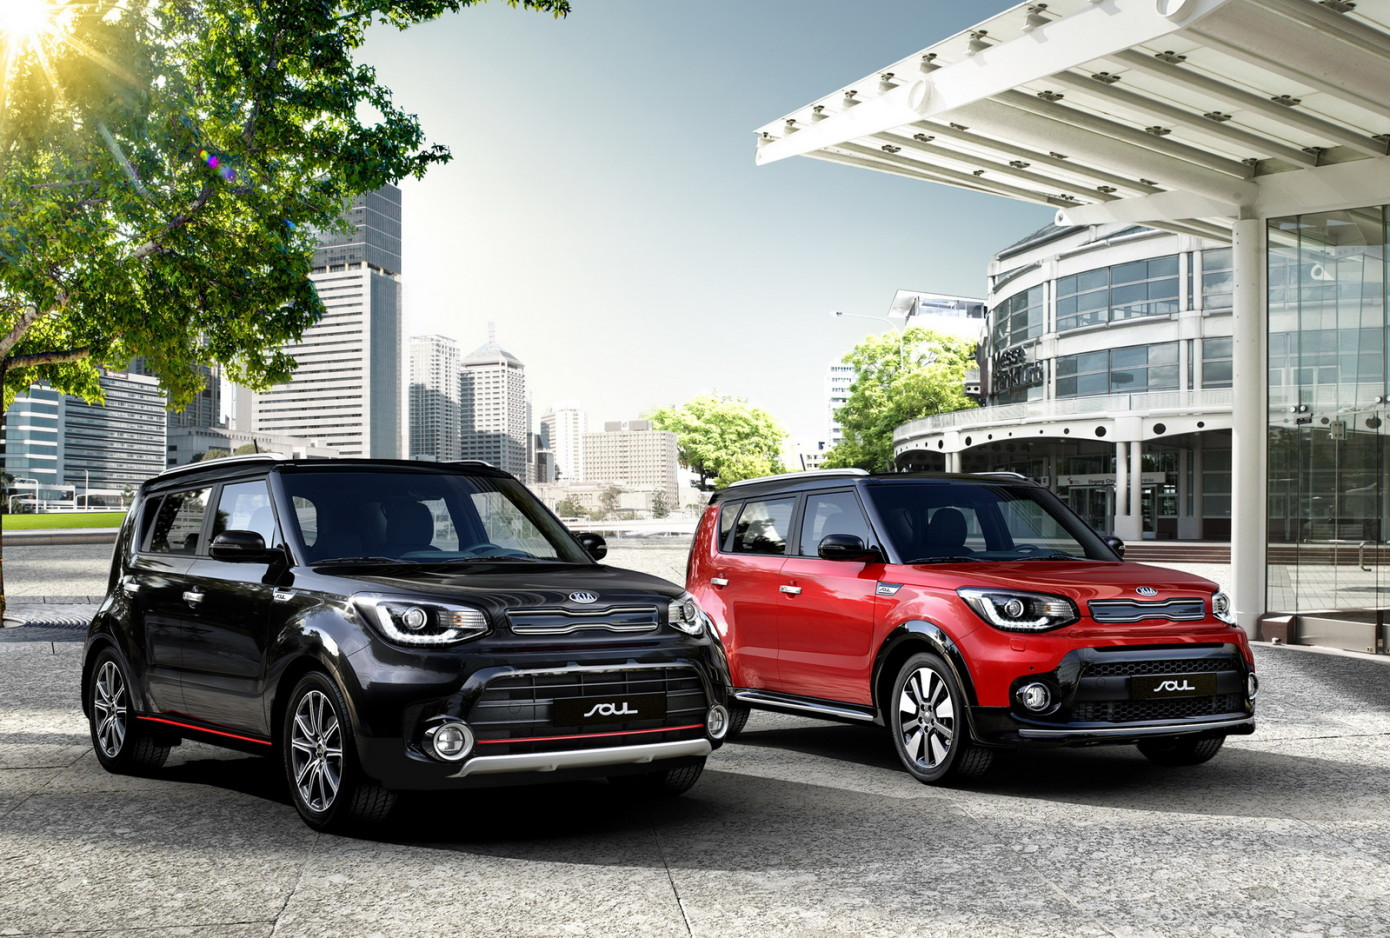 2017 Kia Soul Turbo First Drive And Review It S Invigoratingly Hamstertastic